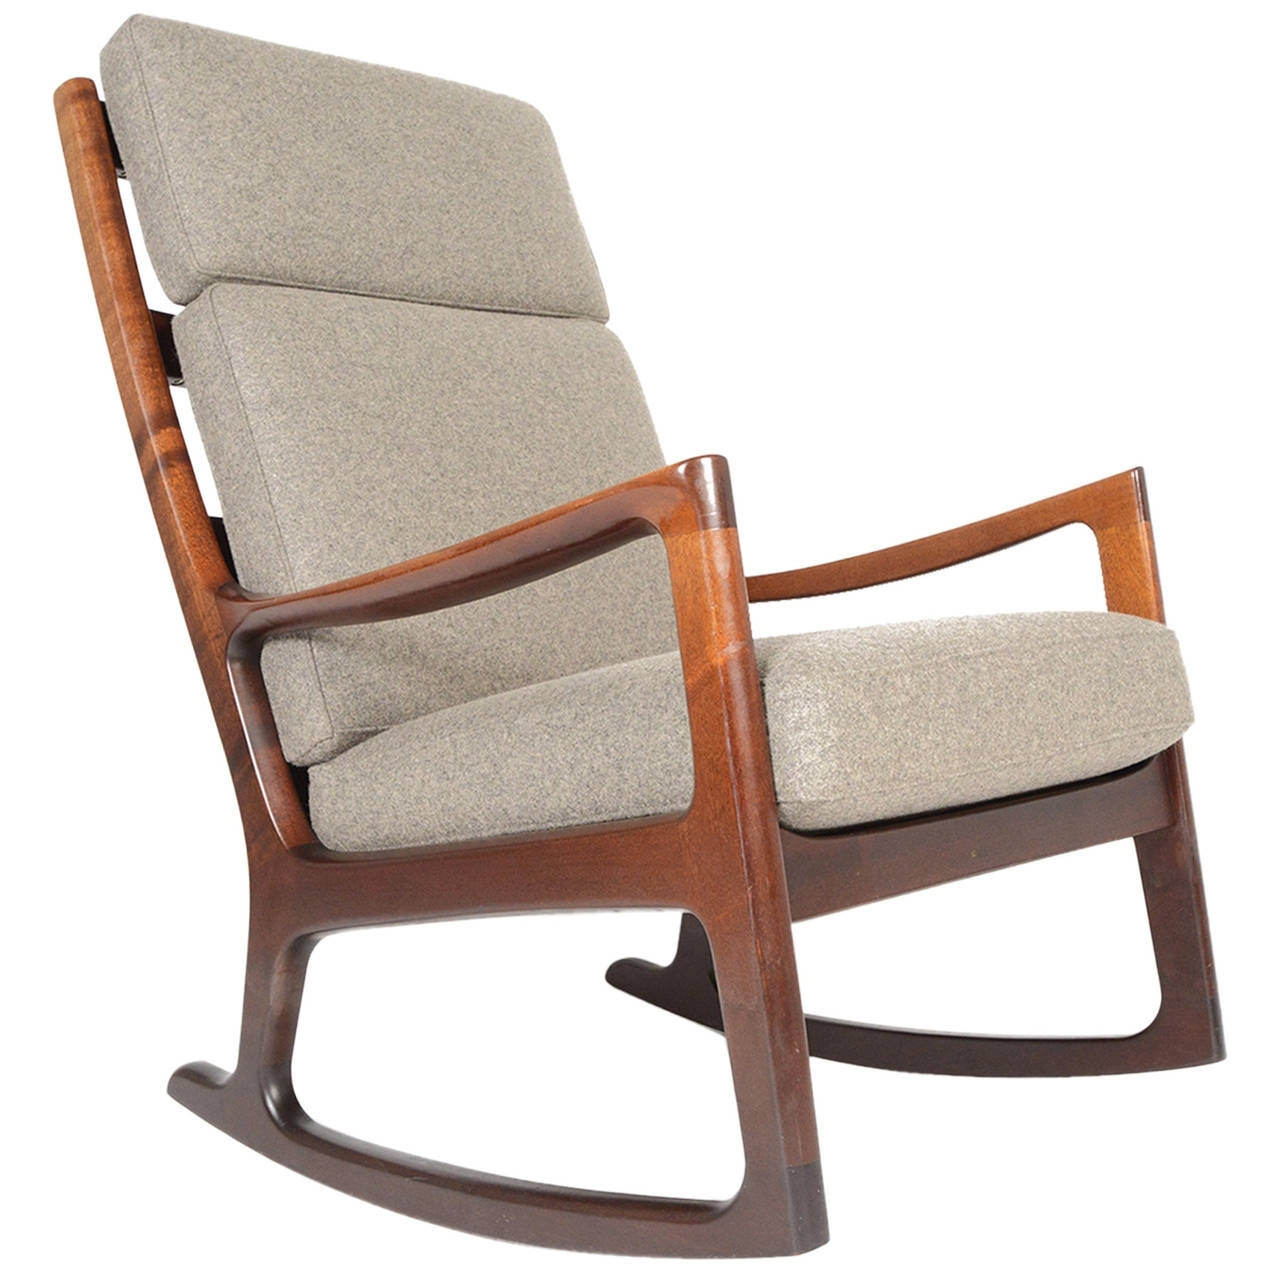 15 Collection of High Back Rocking Chairs